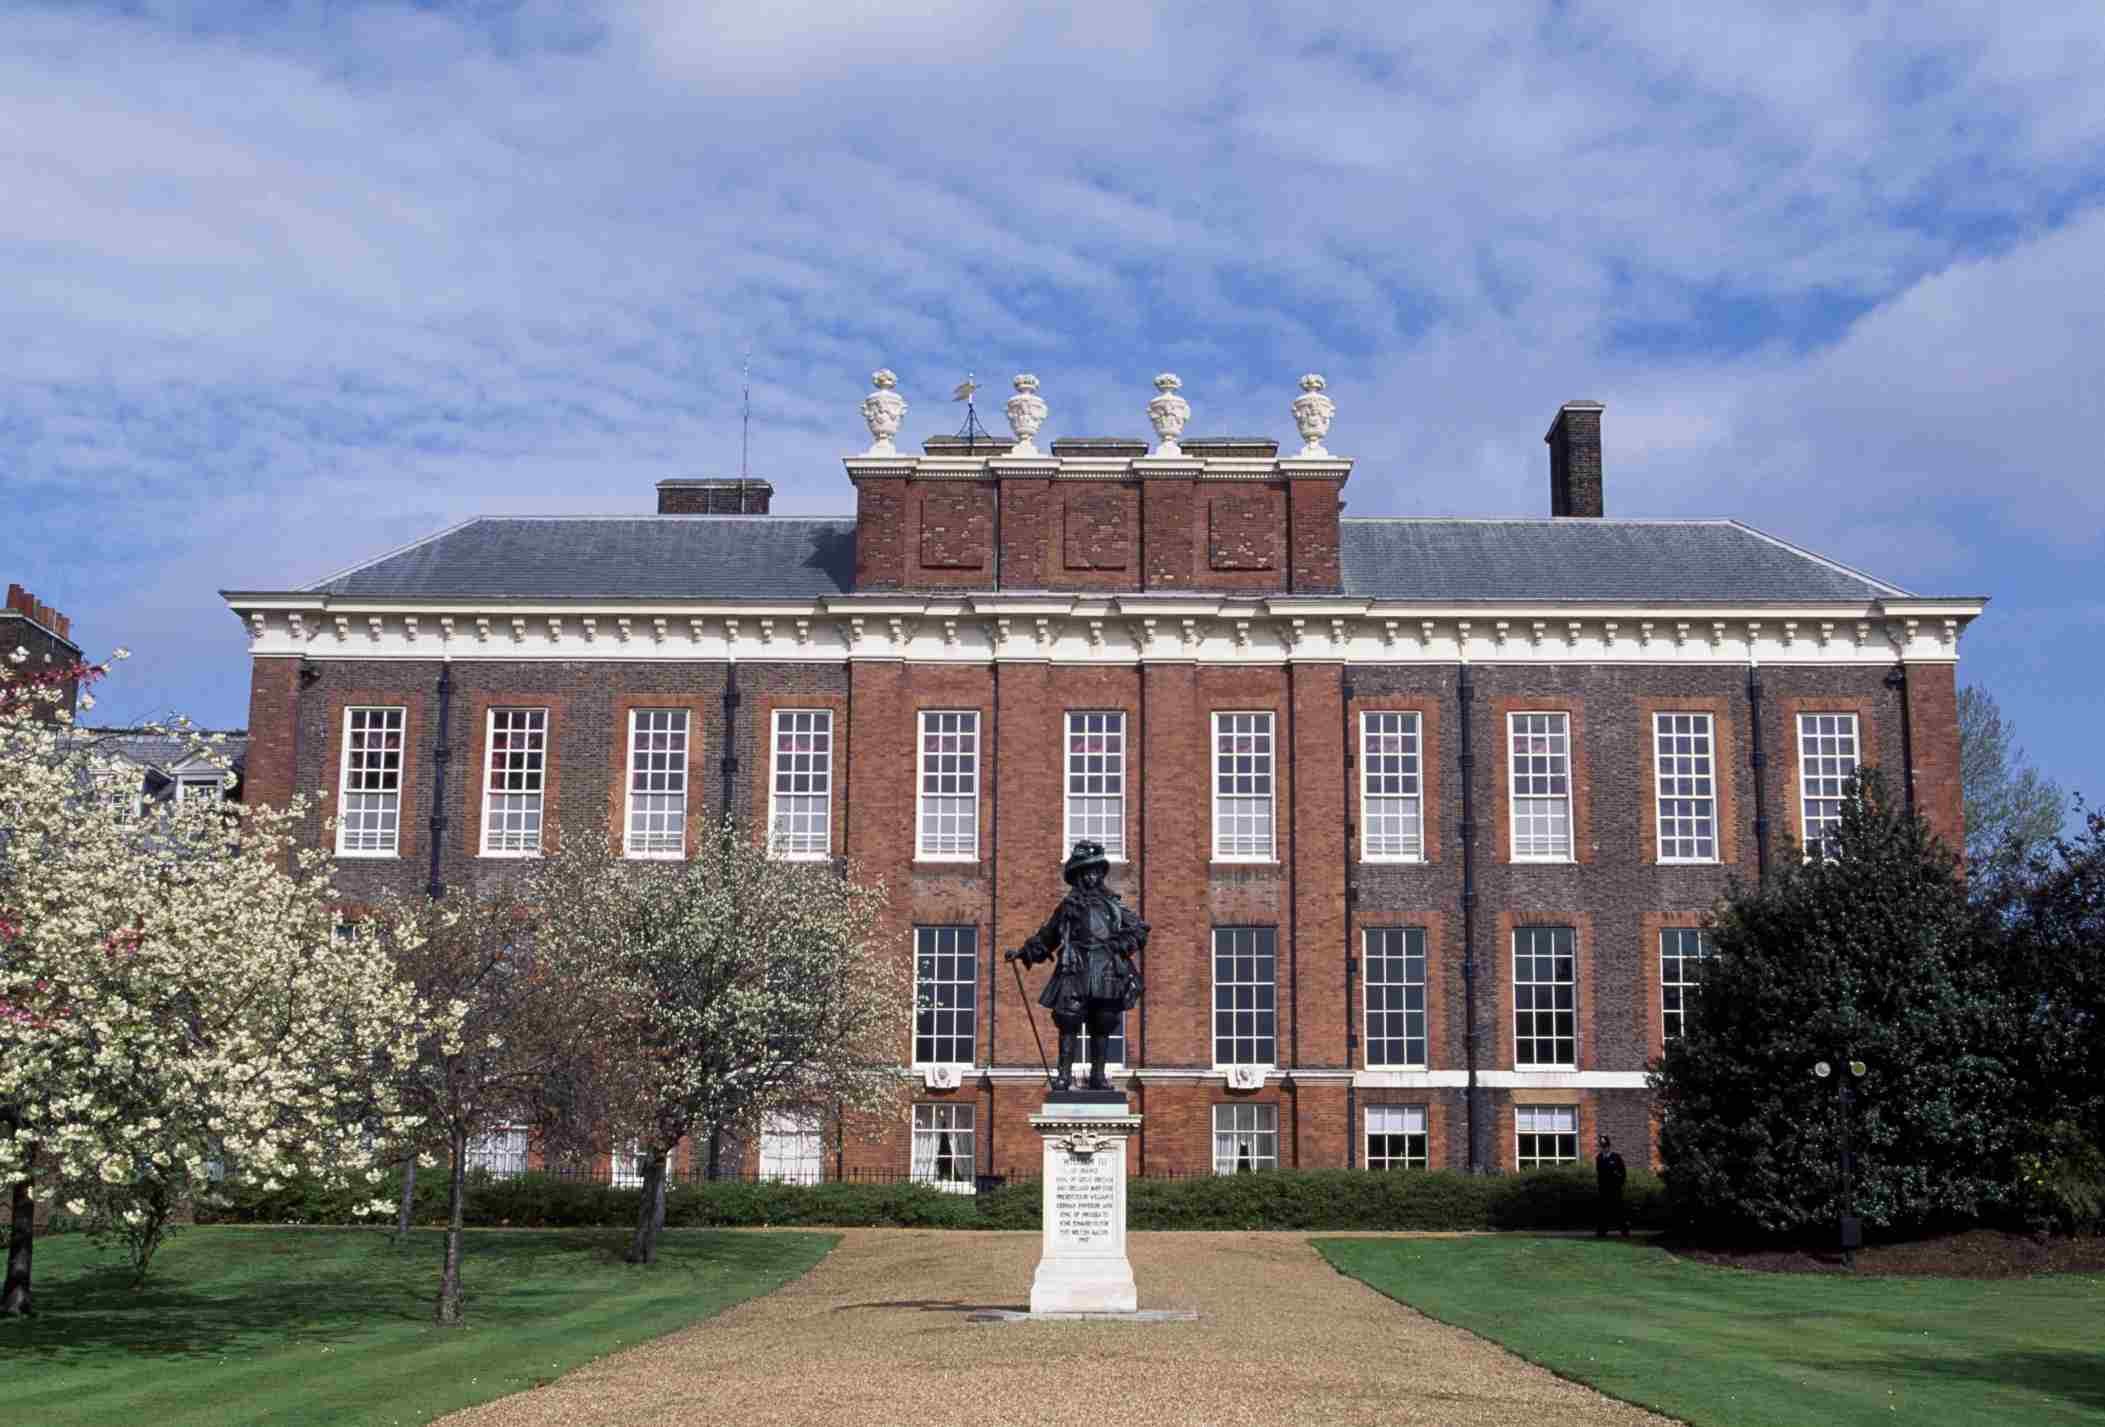 Kensington Palace with the statue in front.